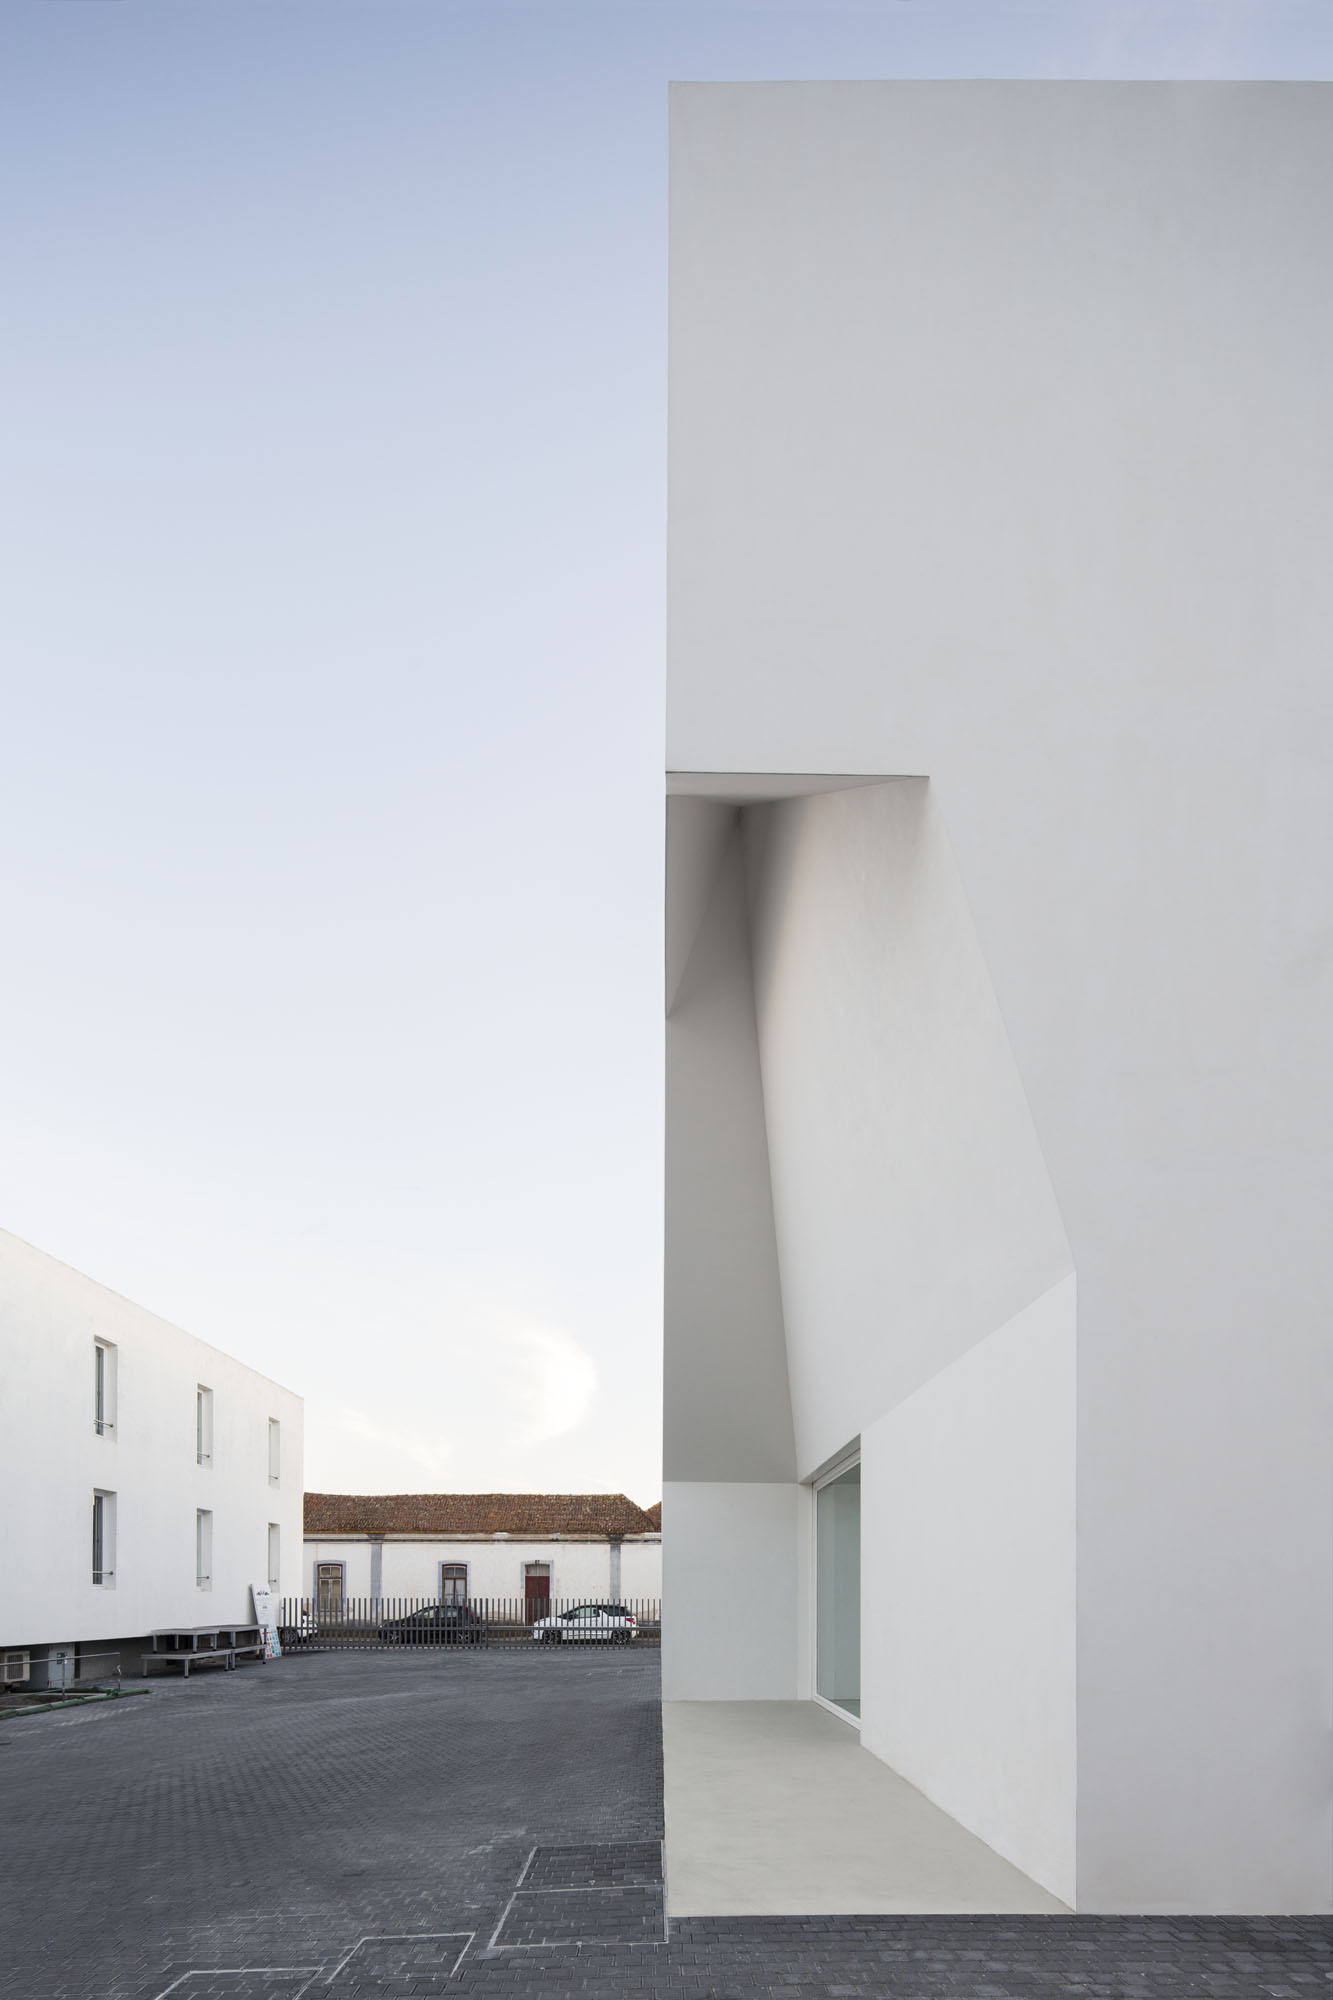 Aires Mateus' Community Centre in Grândola, Portugal | Yellowtrace